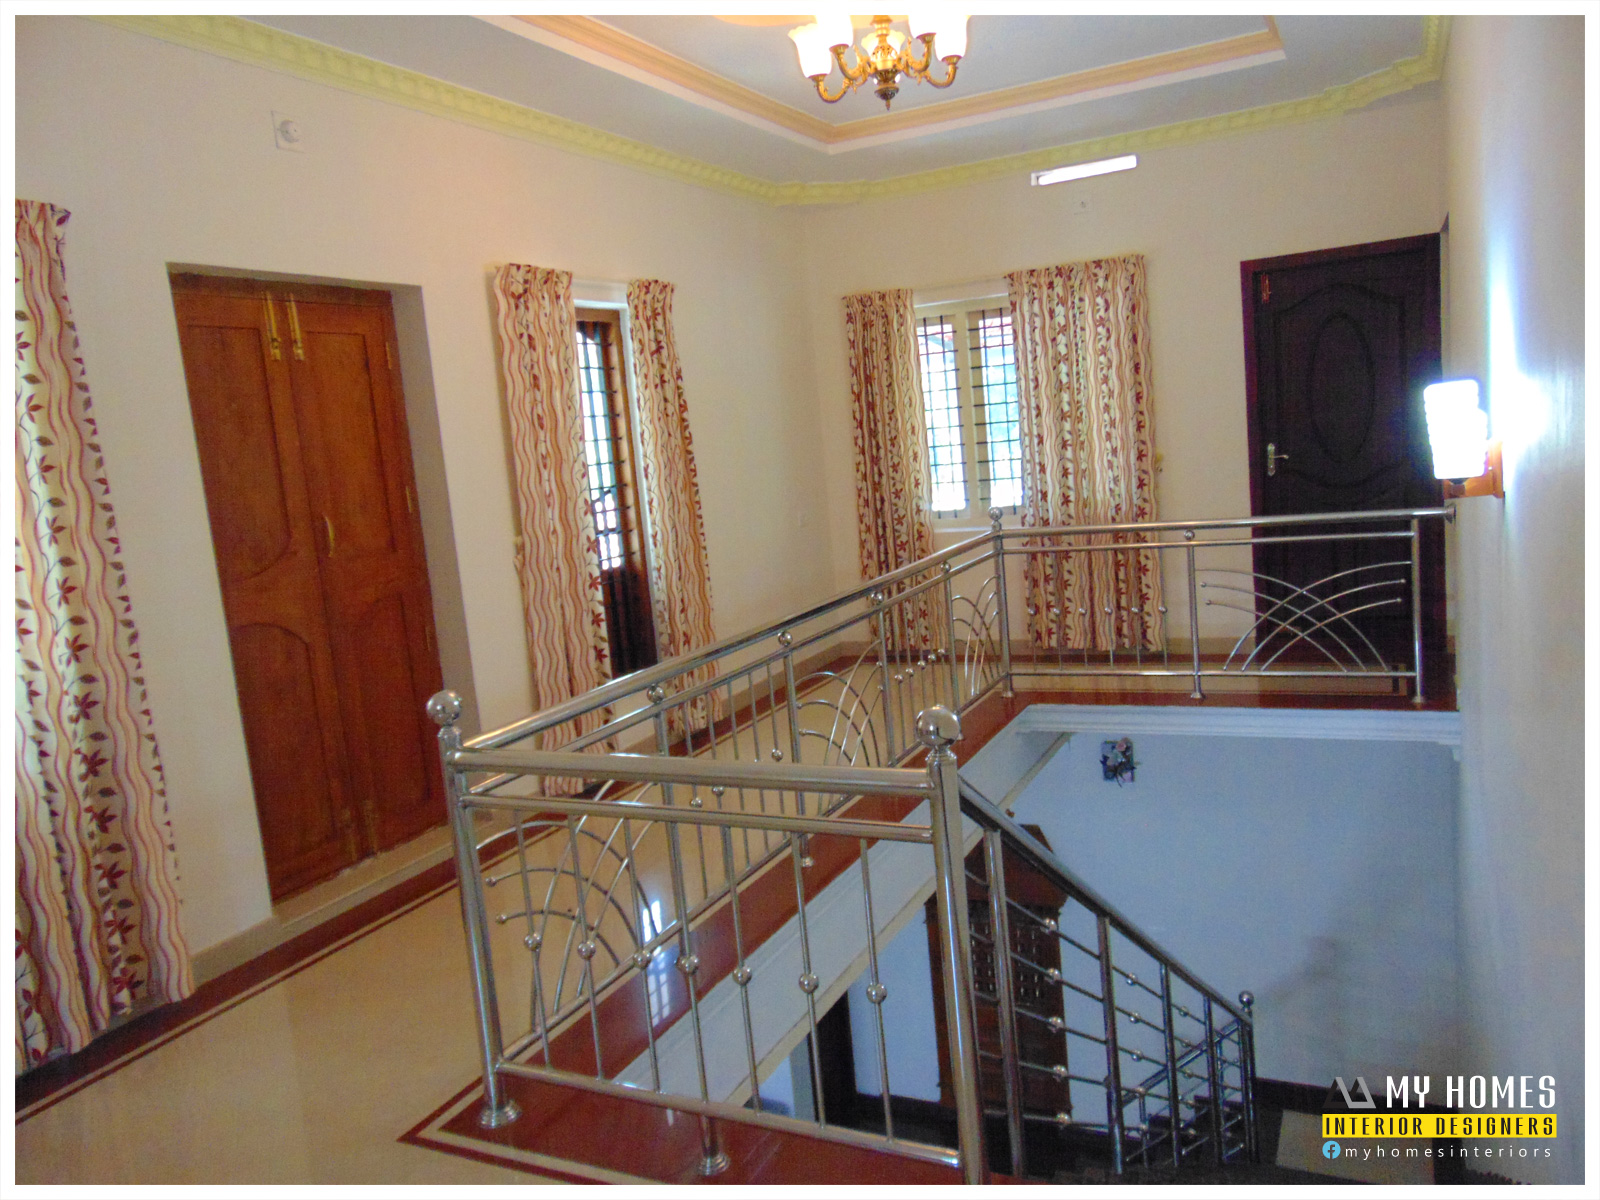 Merveilleux Latest Trend Kerala Home Staircase Models Designs